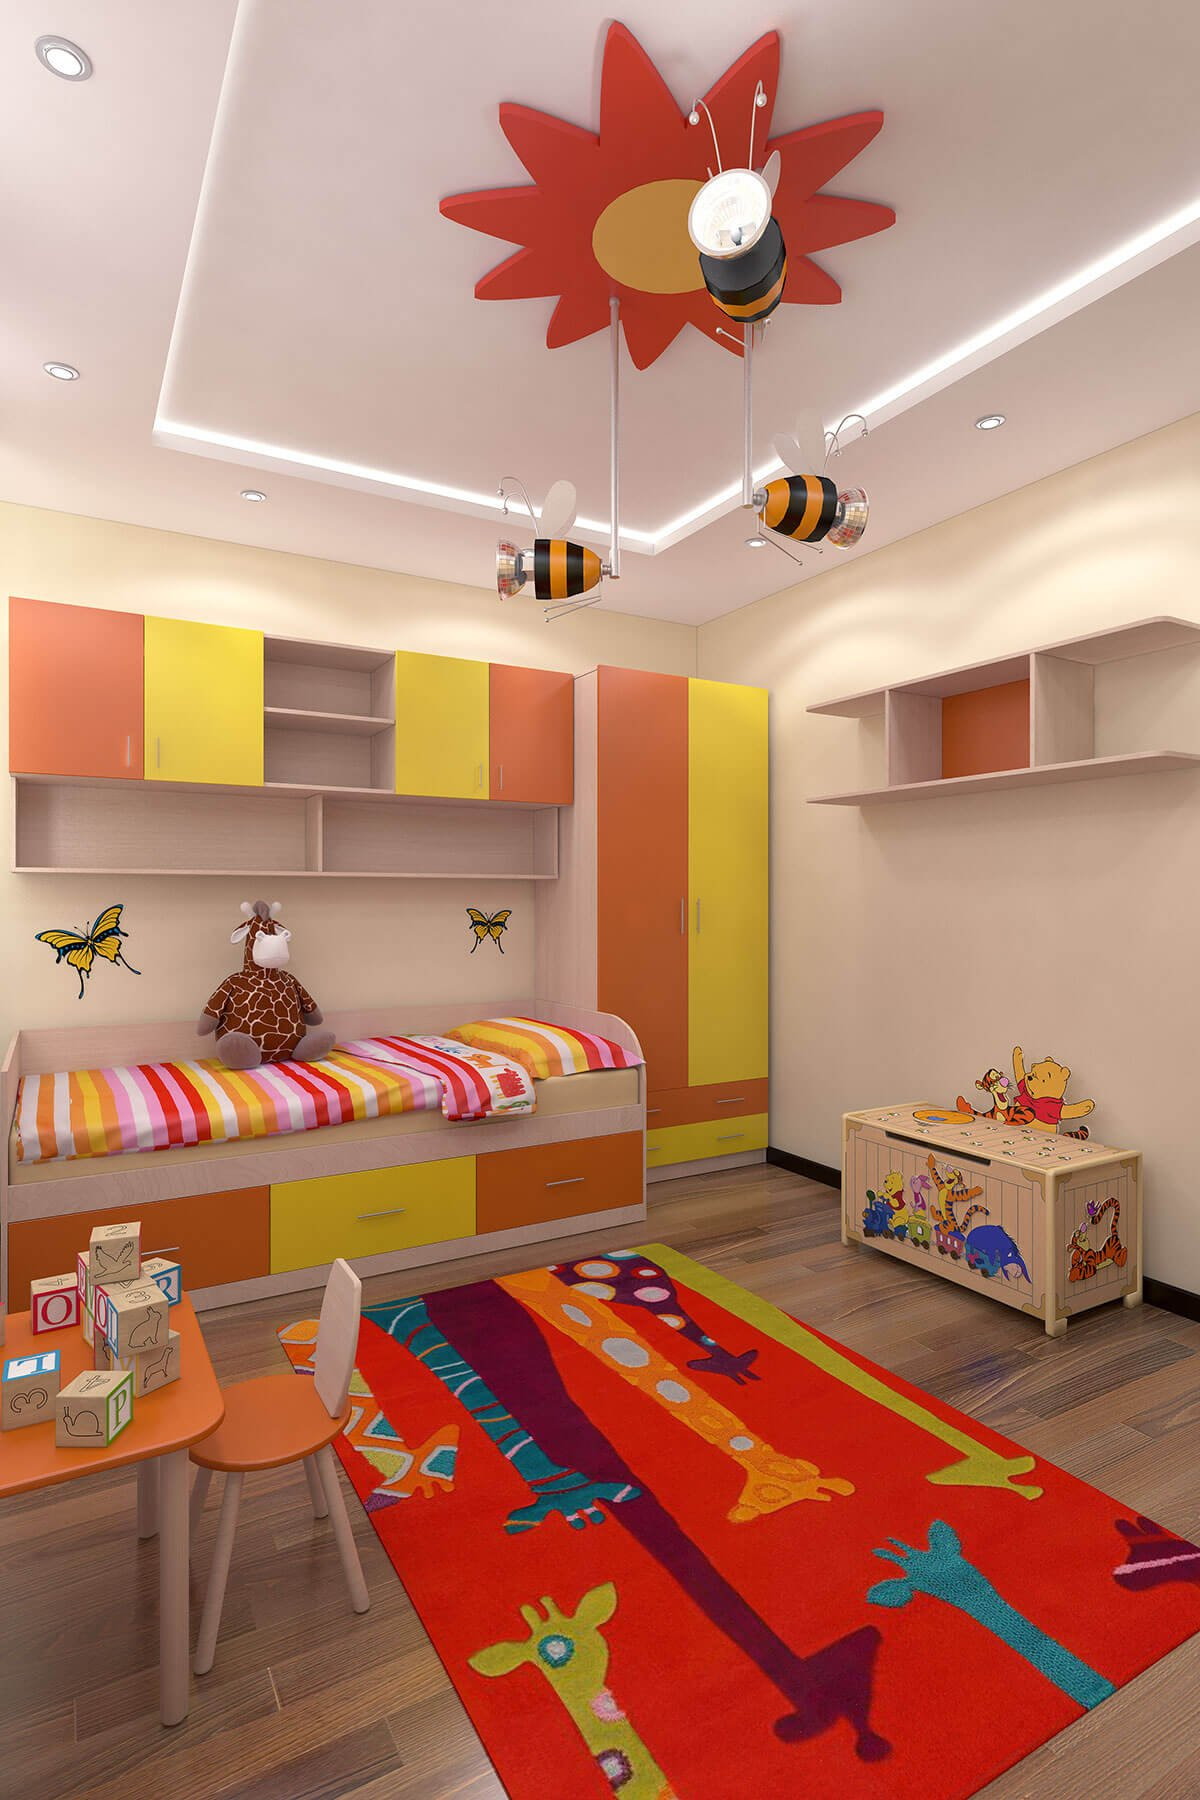 3D Visualisation children's room, 3D design, Interior design, London, UK.